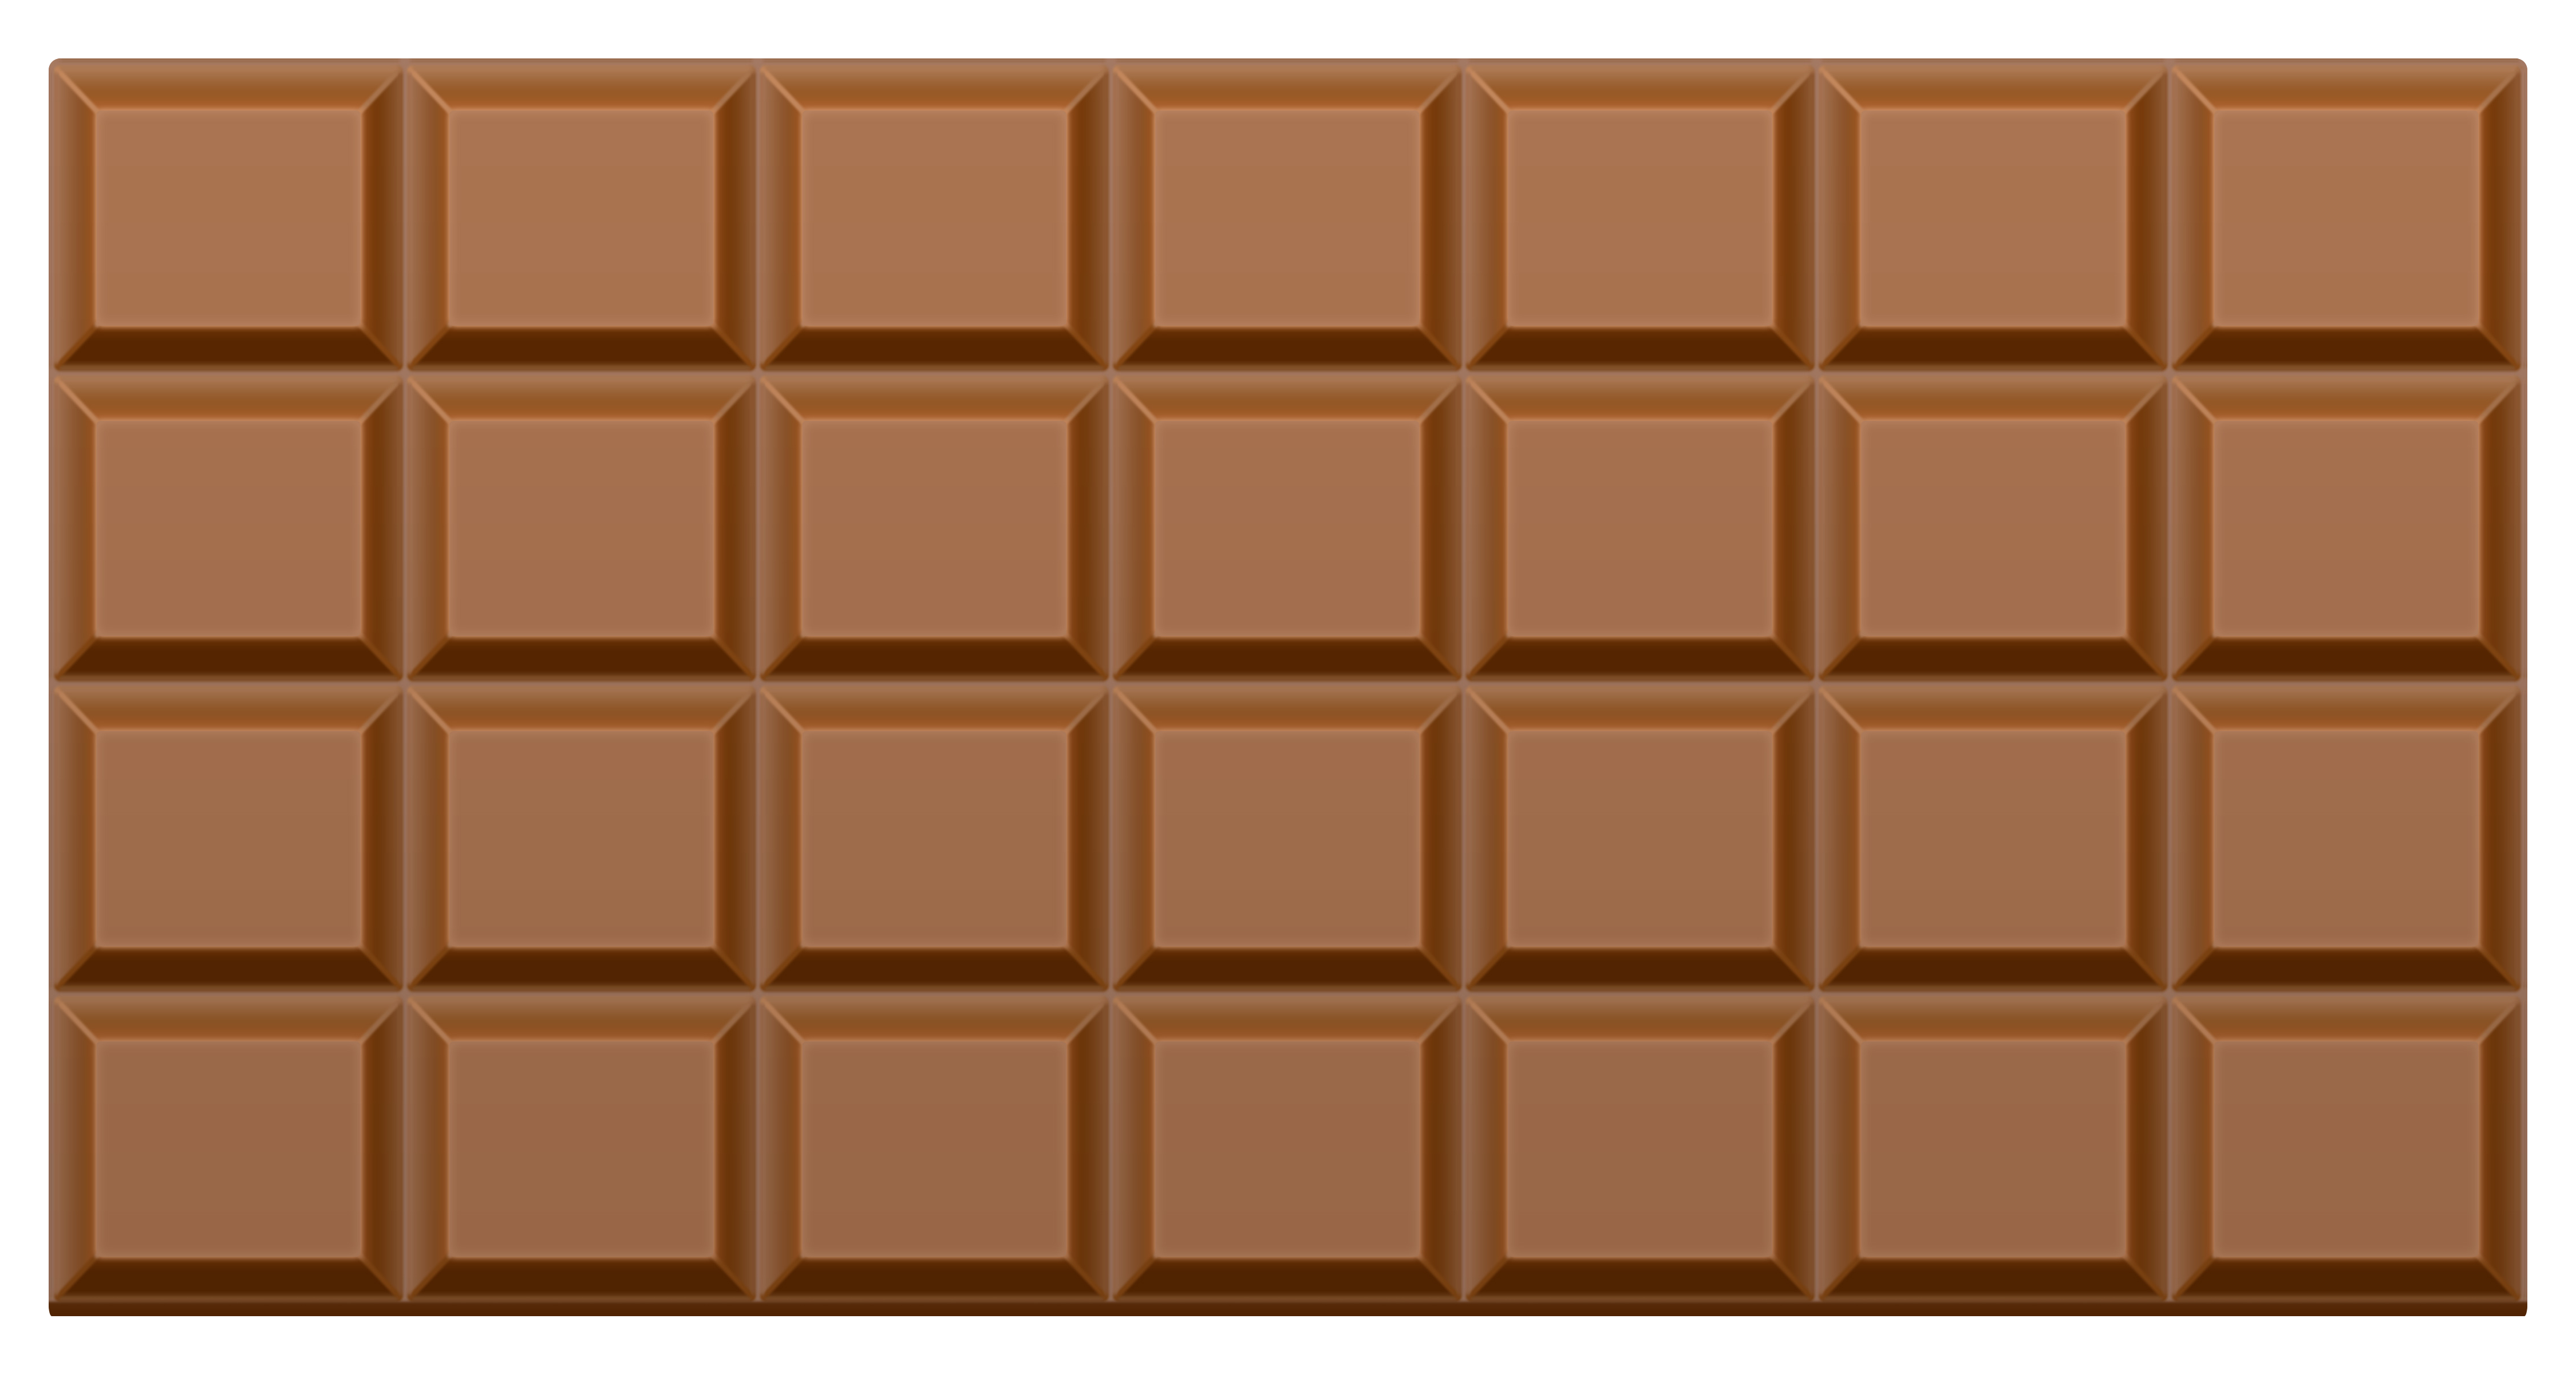 Chocolate bar PNG image - Chocolate HD PNG